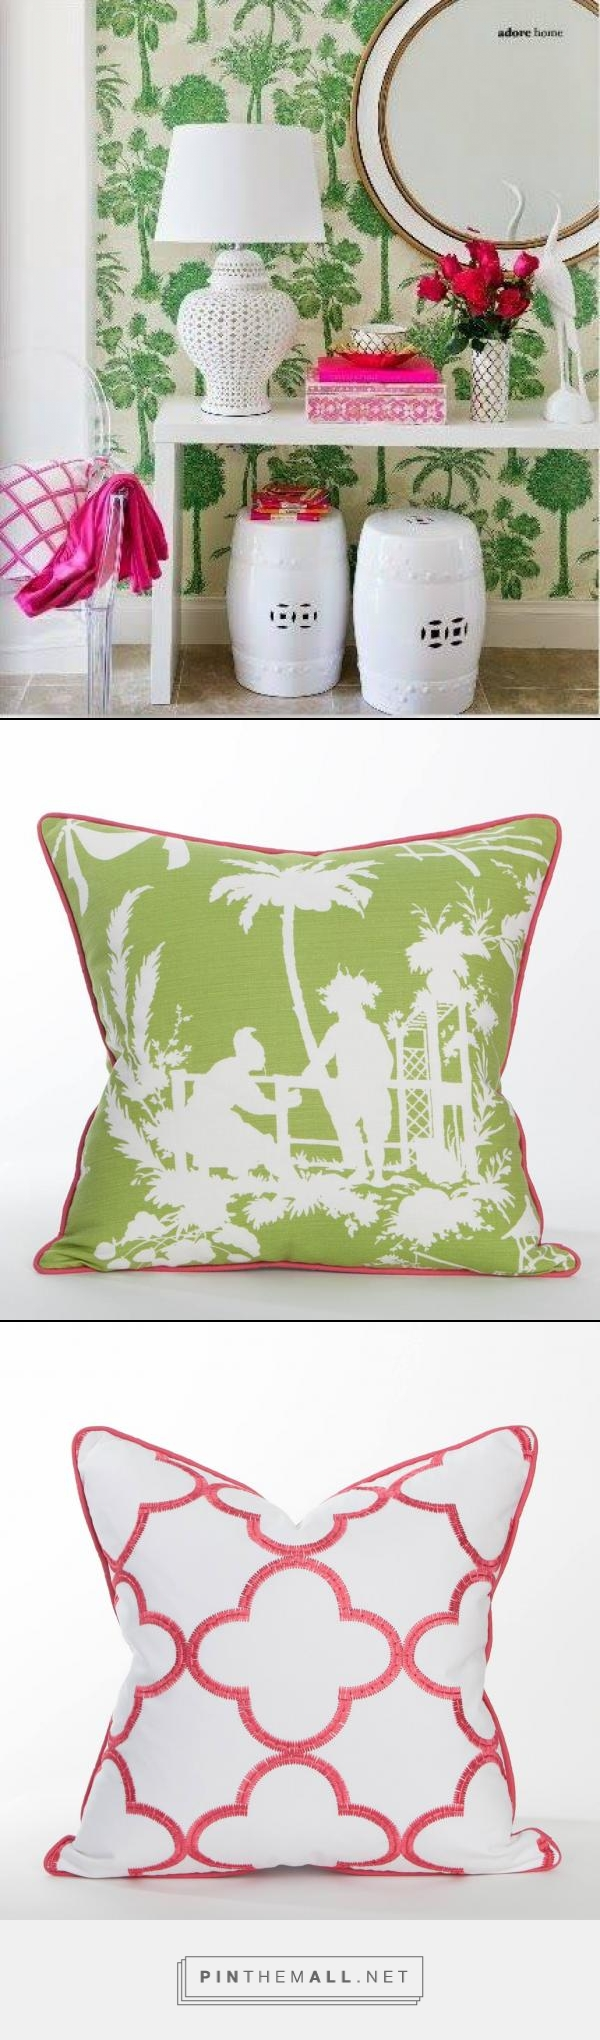 Inspiration...Palm Beach Collection- Coastal Home Pillows